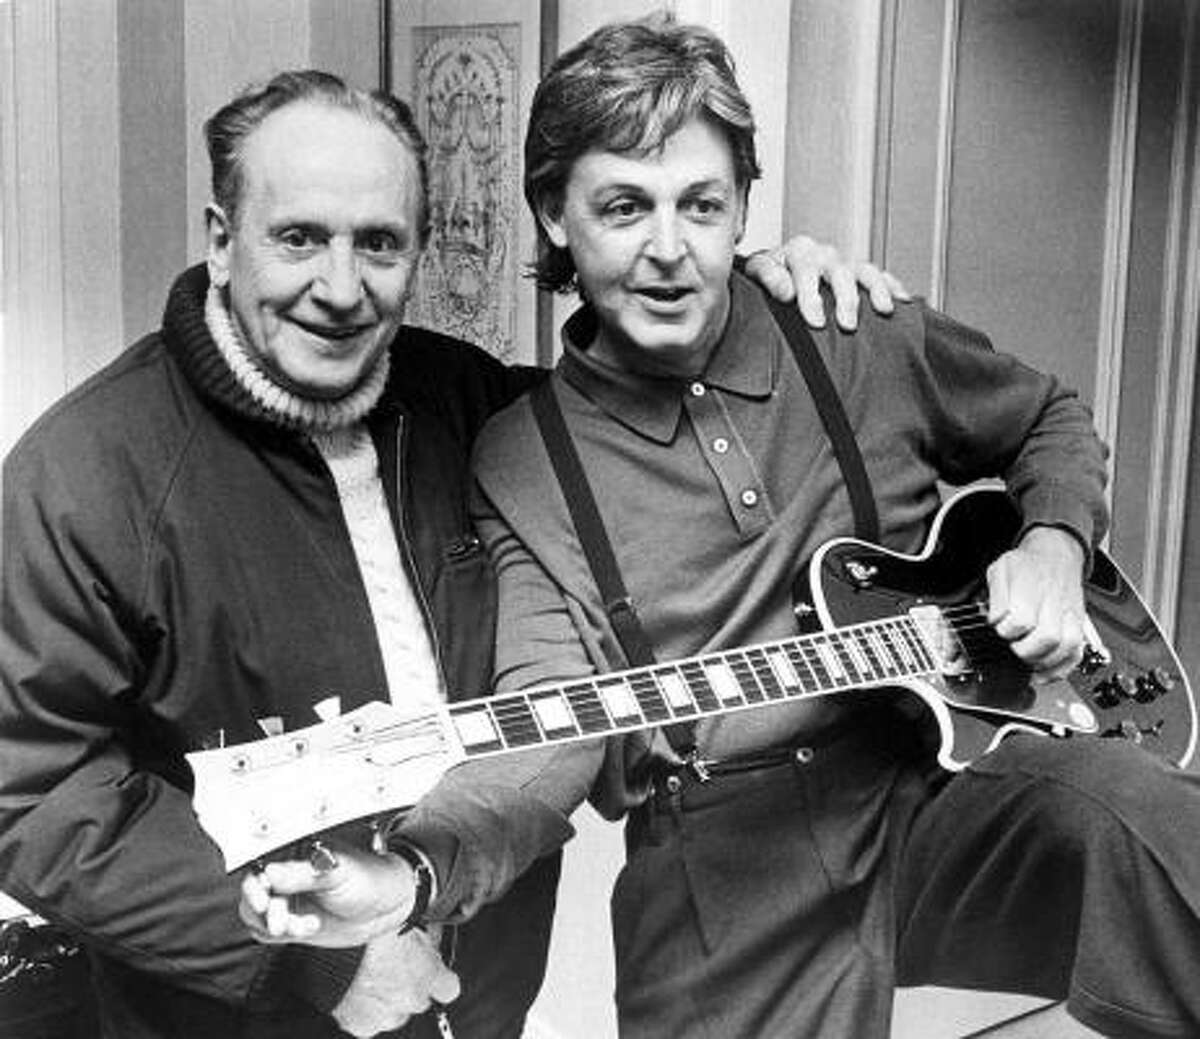 Paul with Paul McCartney